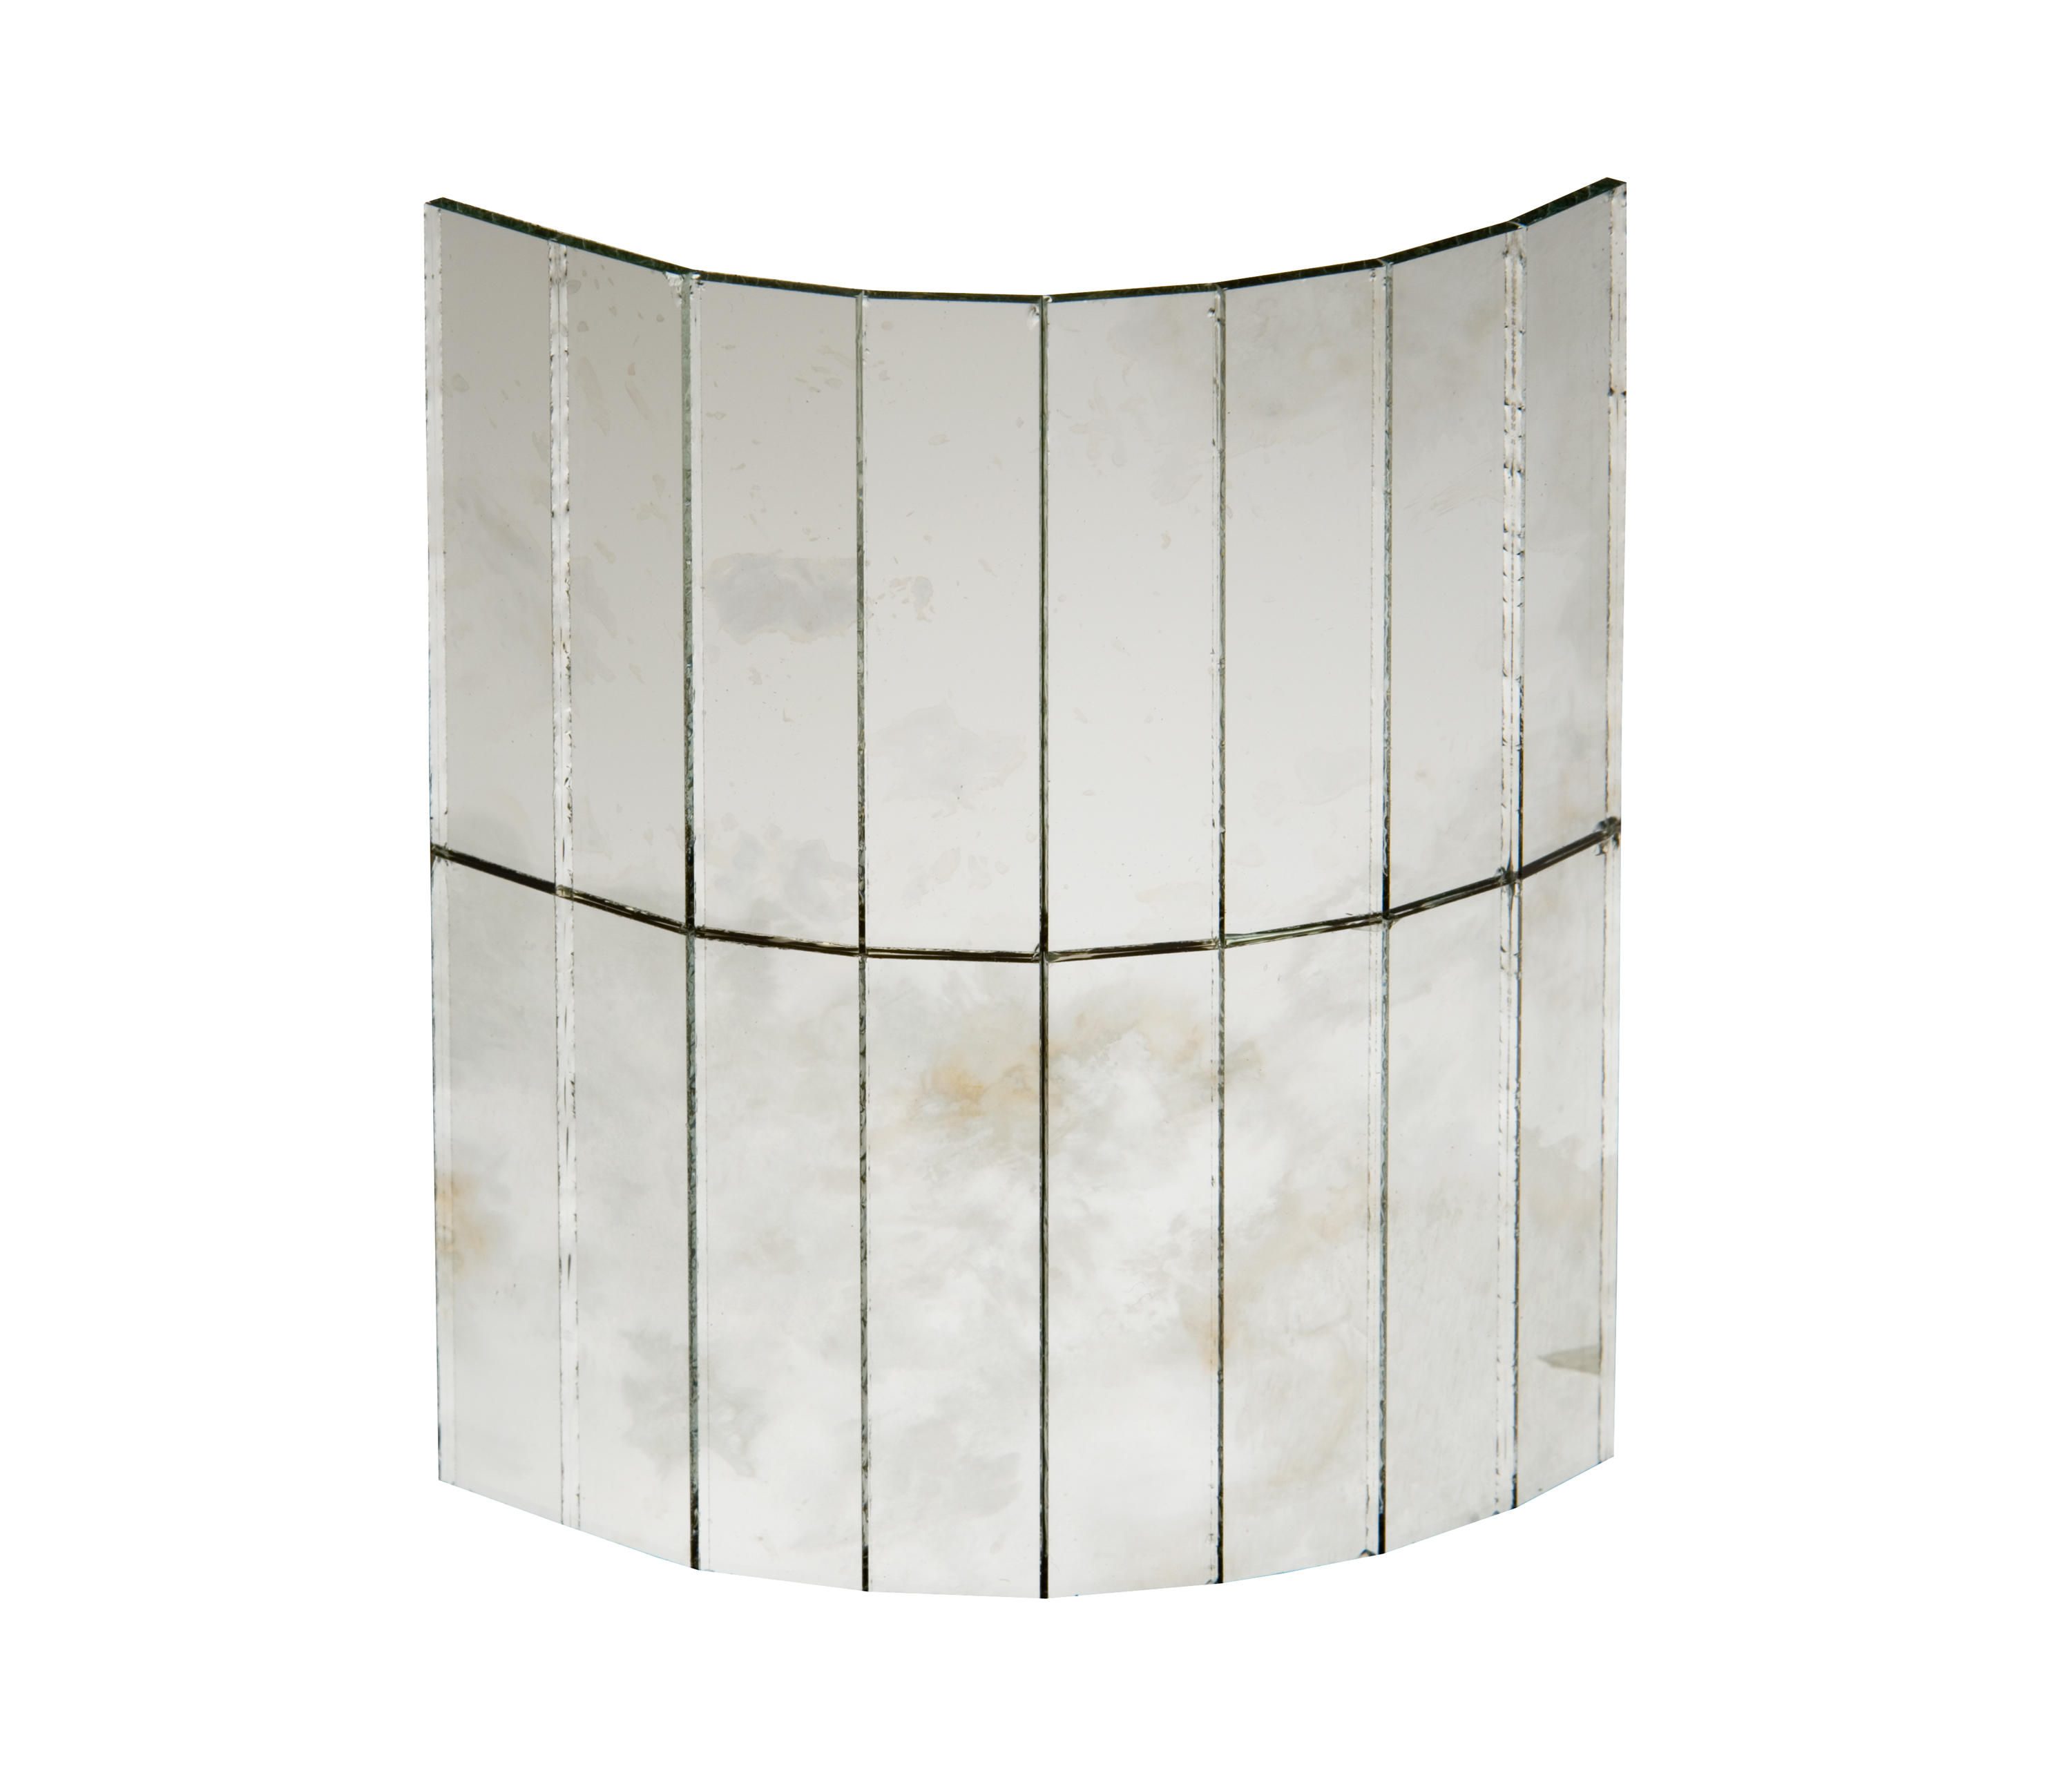 Mosaico E Gli Specchi 4.Mosaico Specchi Saturno 11 Decorative Glass From Antique Mirror